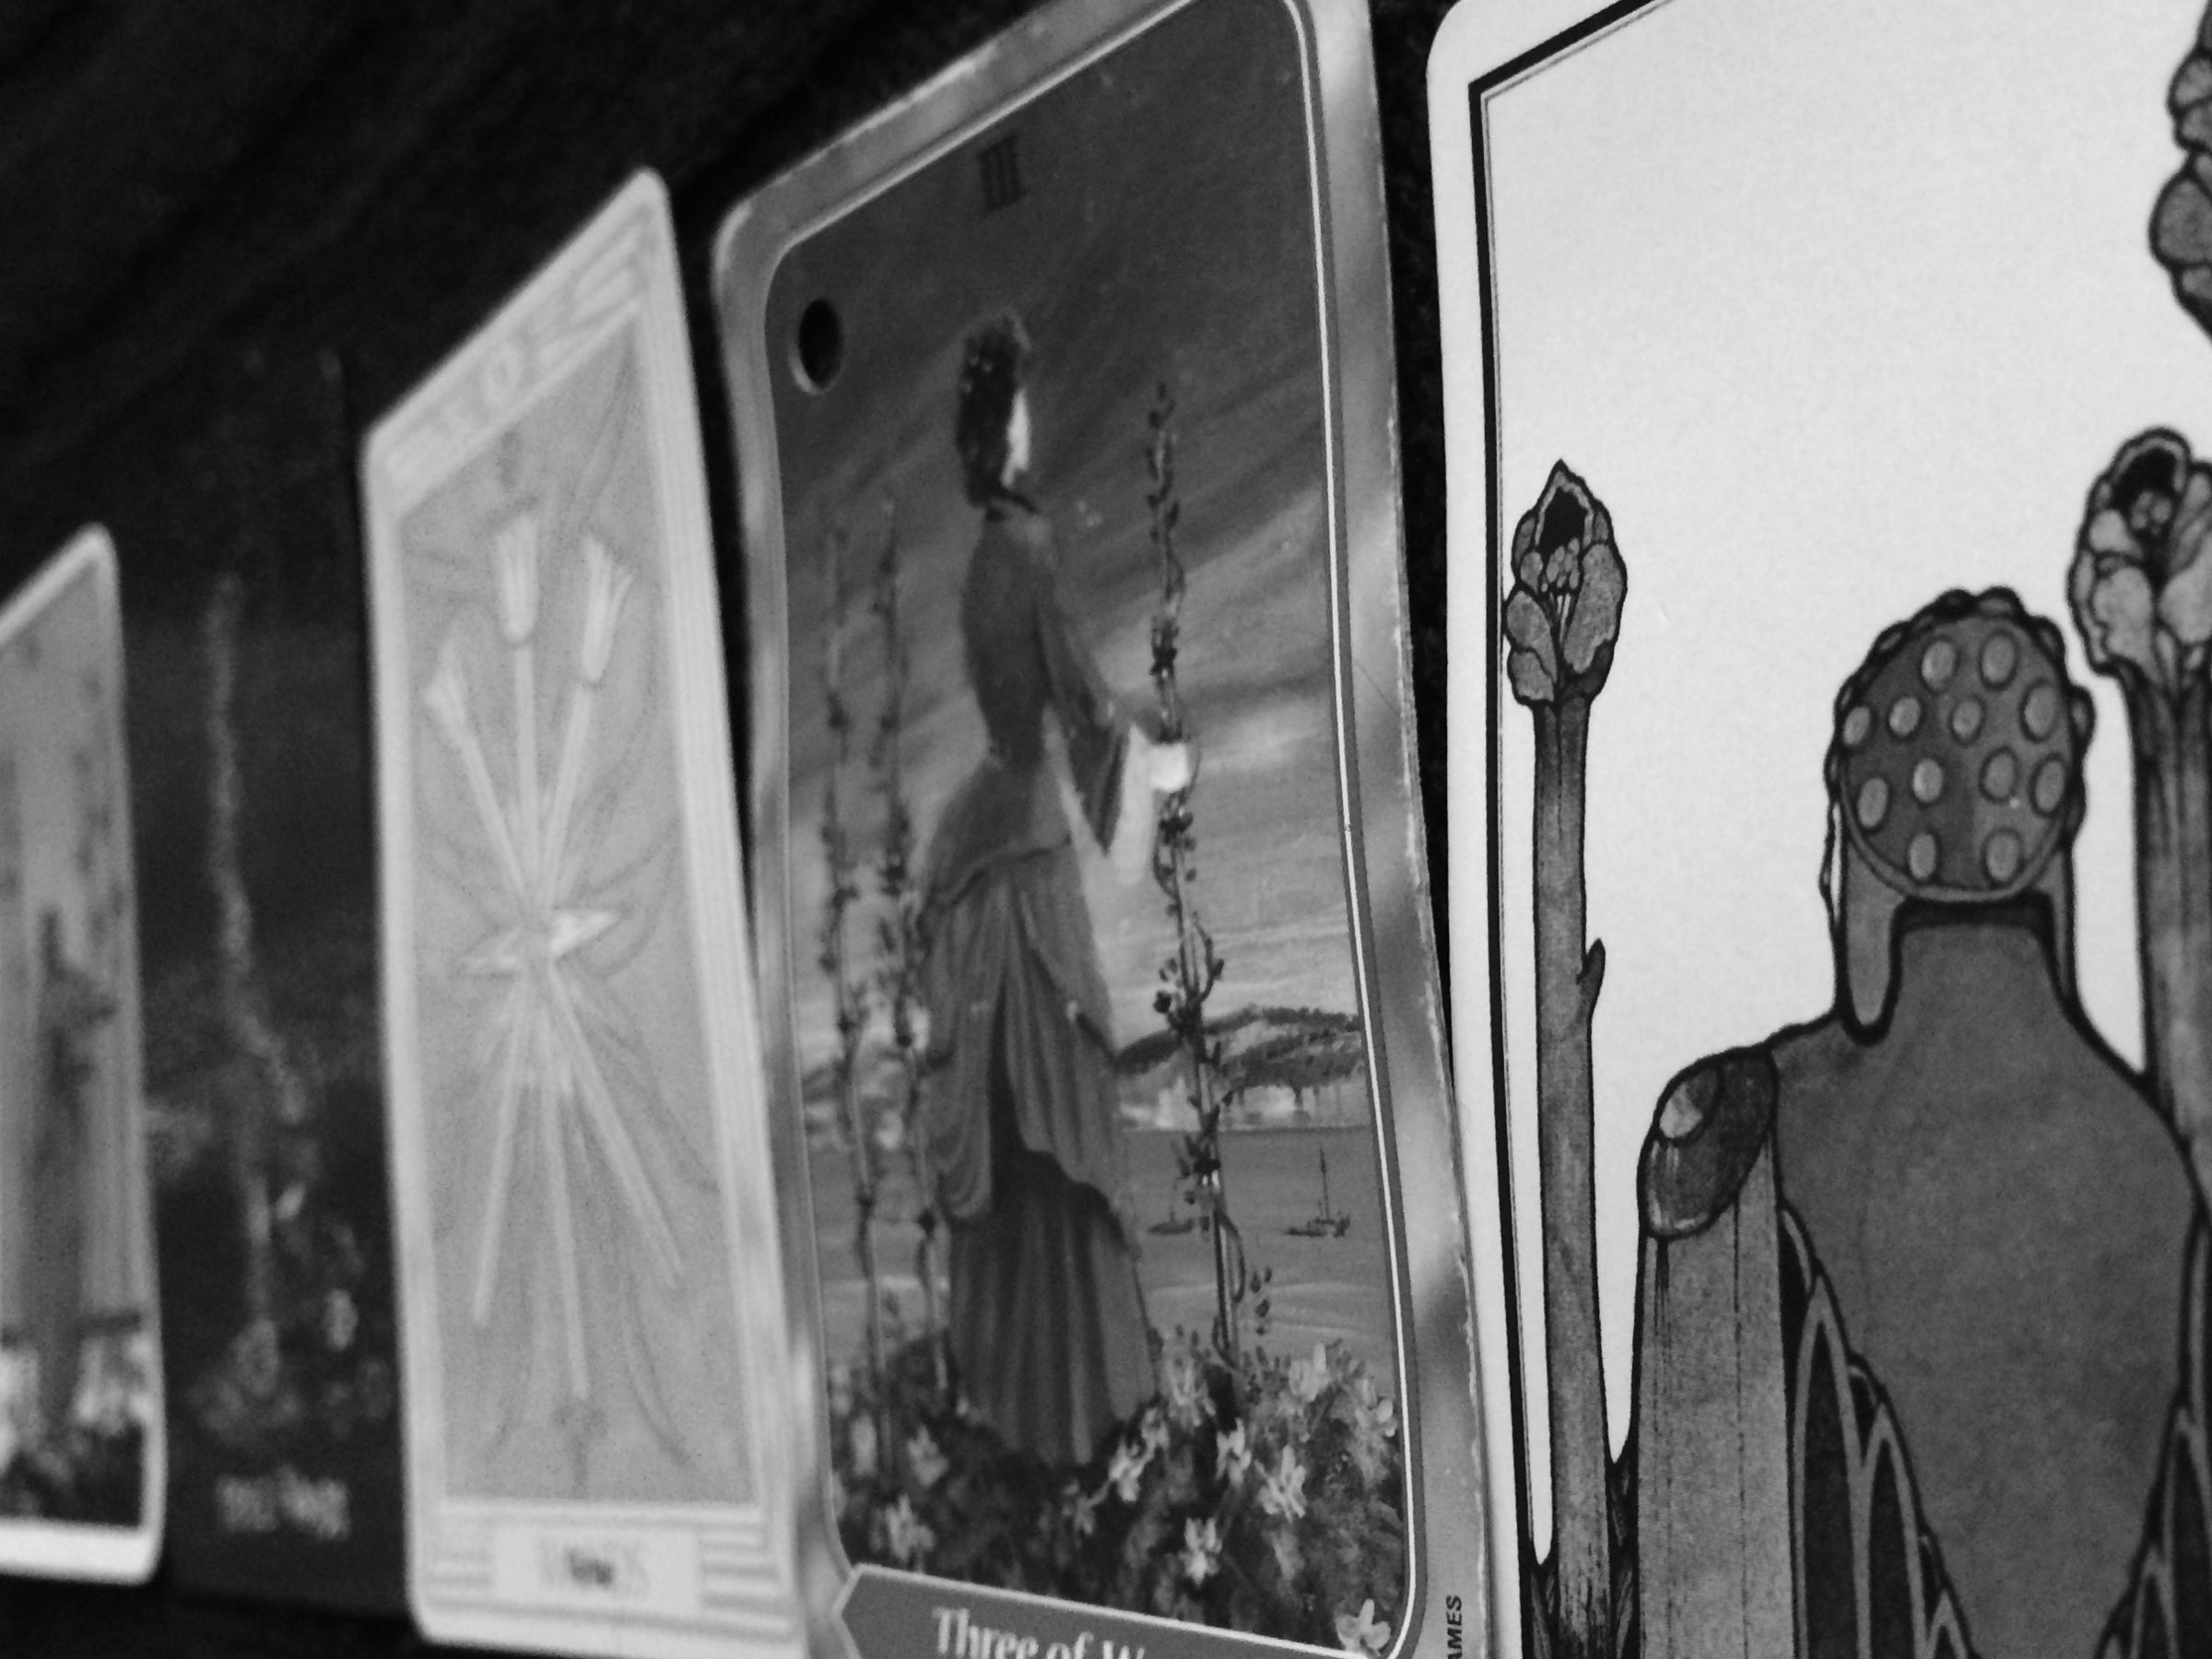 3 of Wands | Weekly Tarot Card Pt 1: Observation and Description